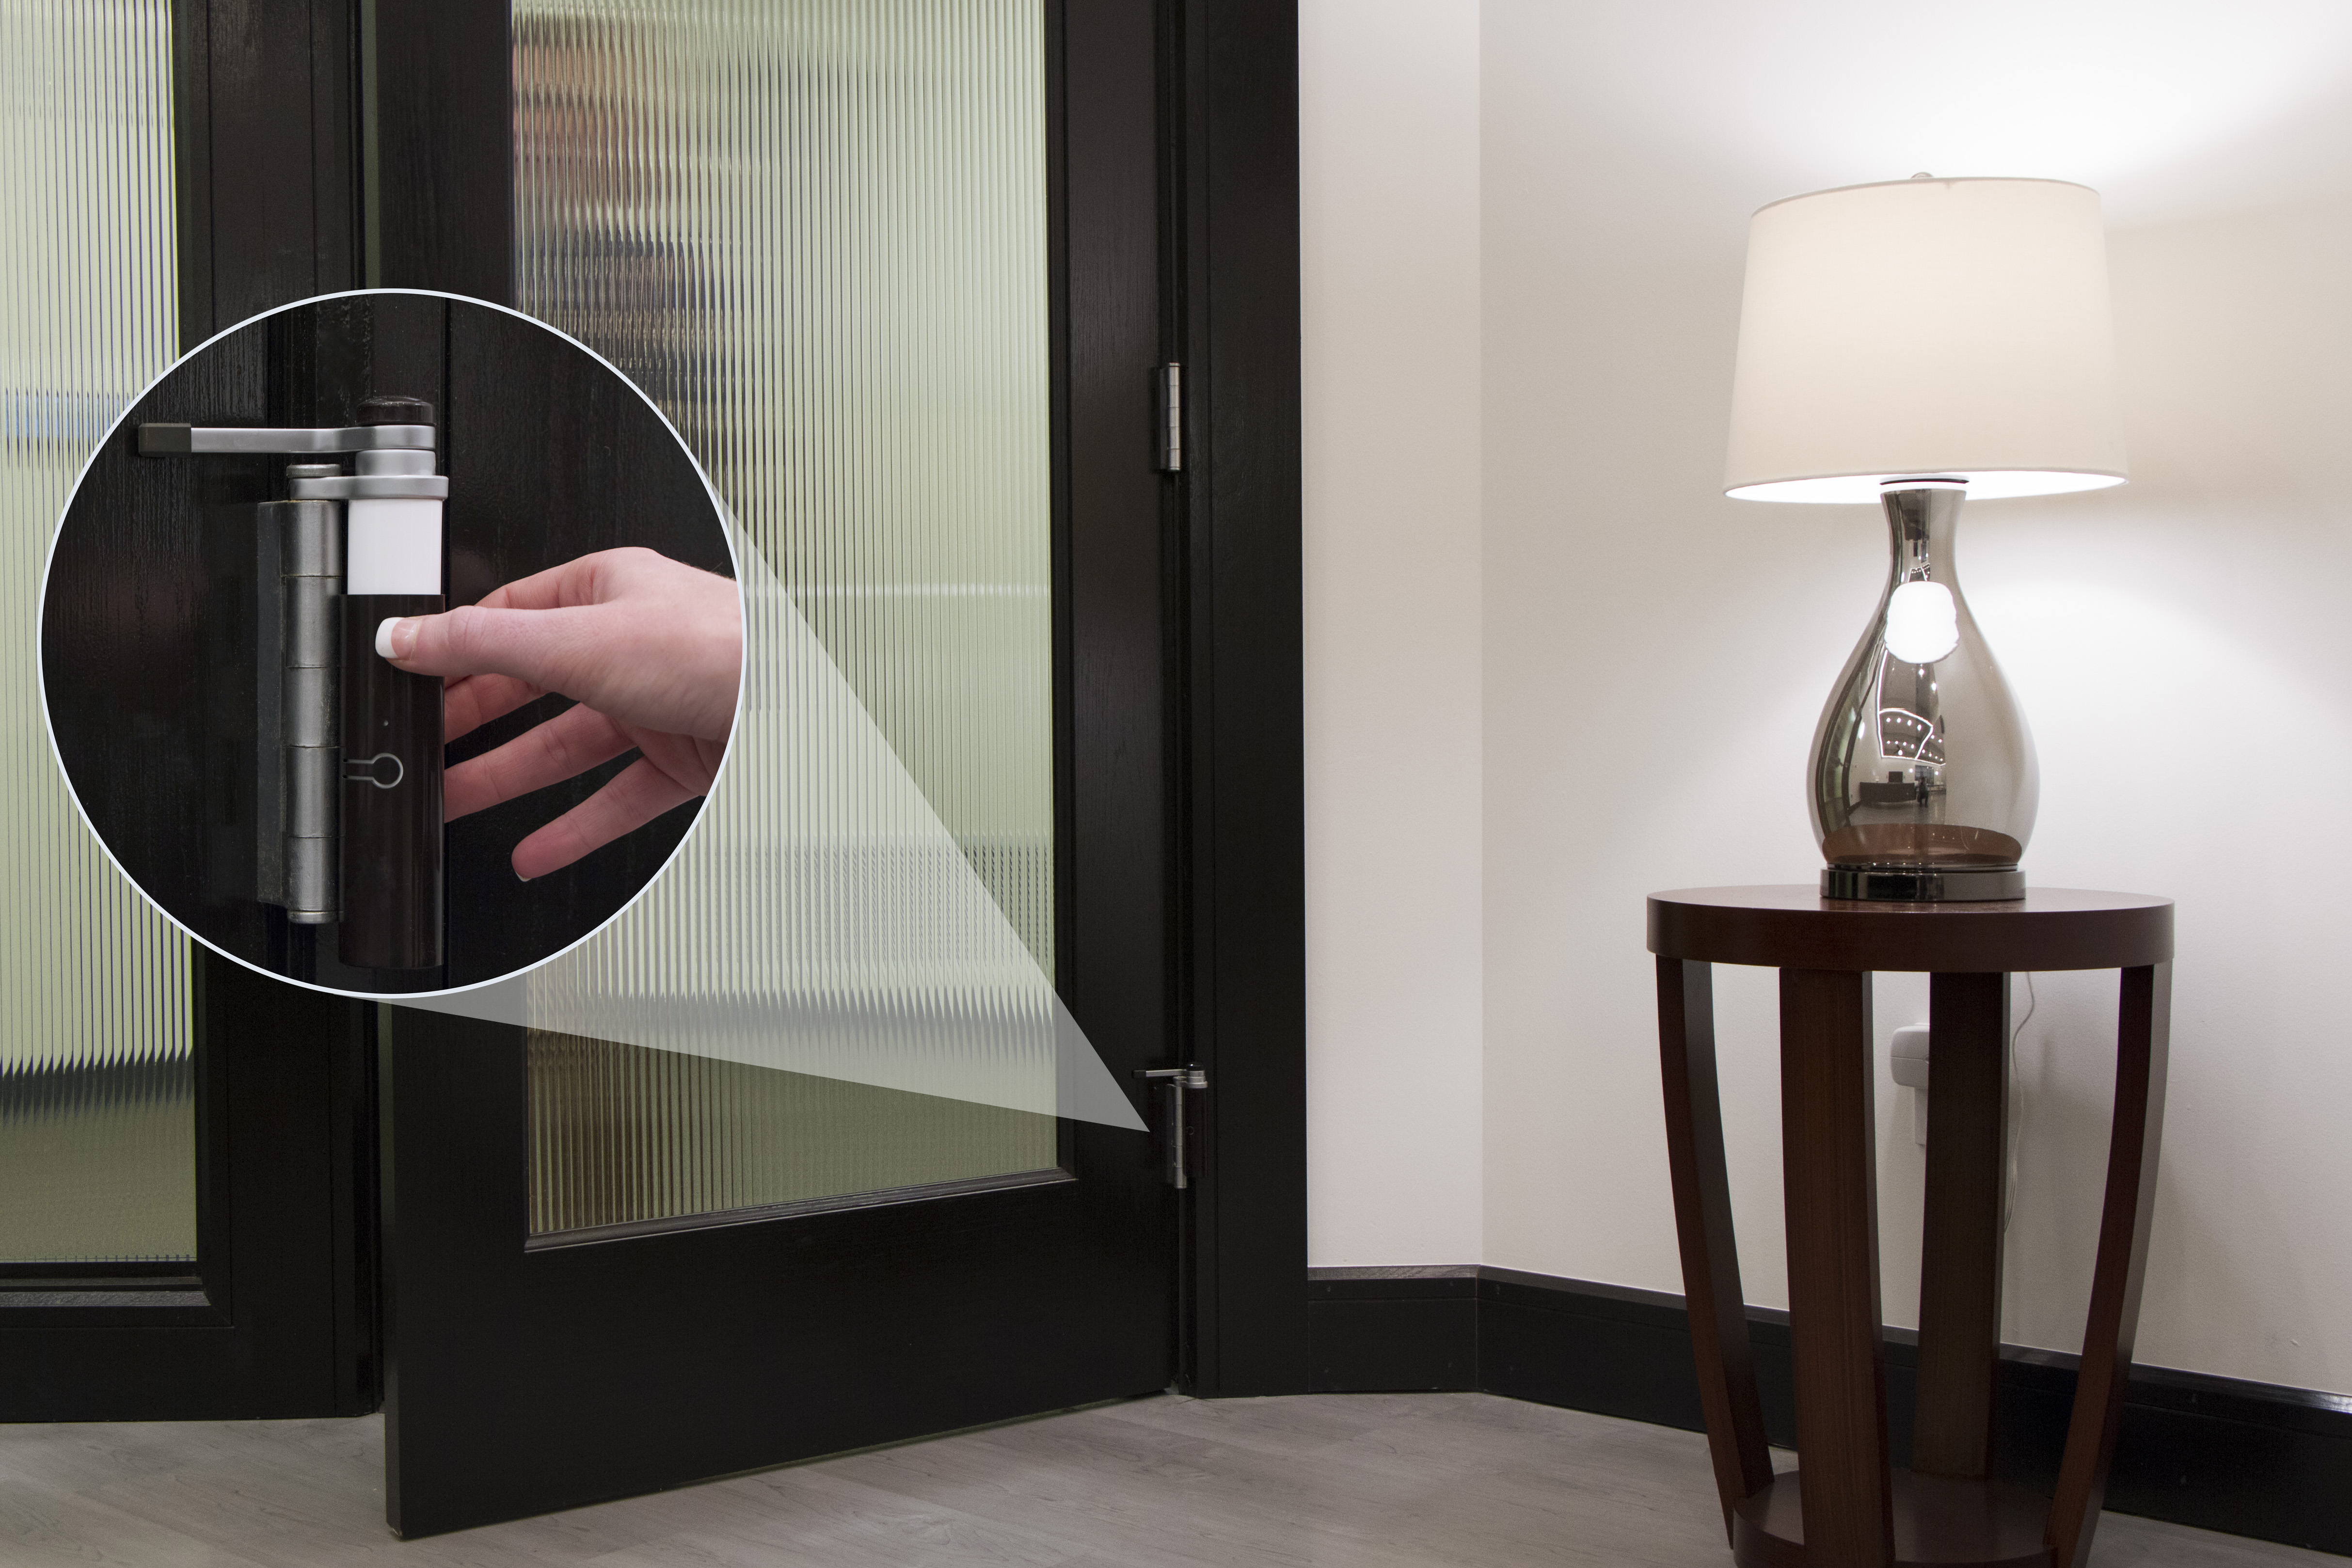 By simply opening or closing the door, the sensor wirelessly triggers scenes throughout your home